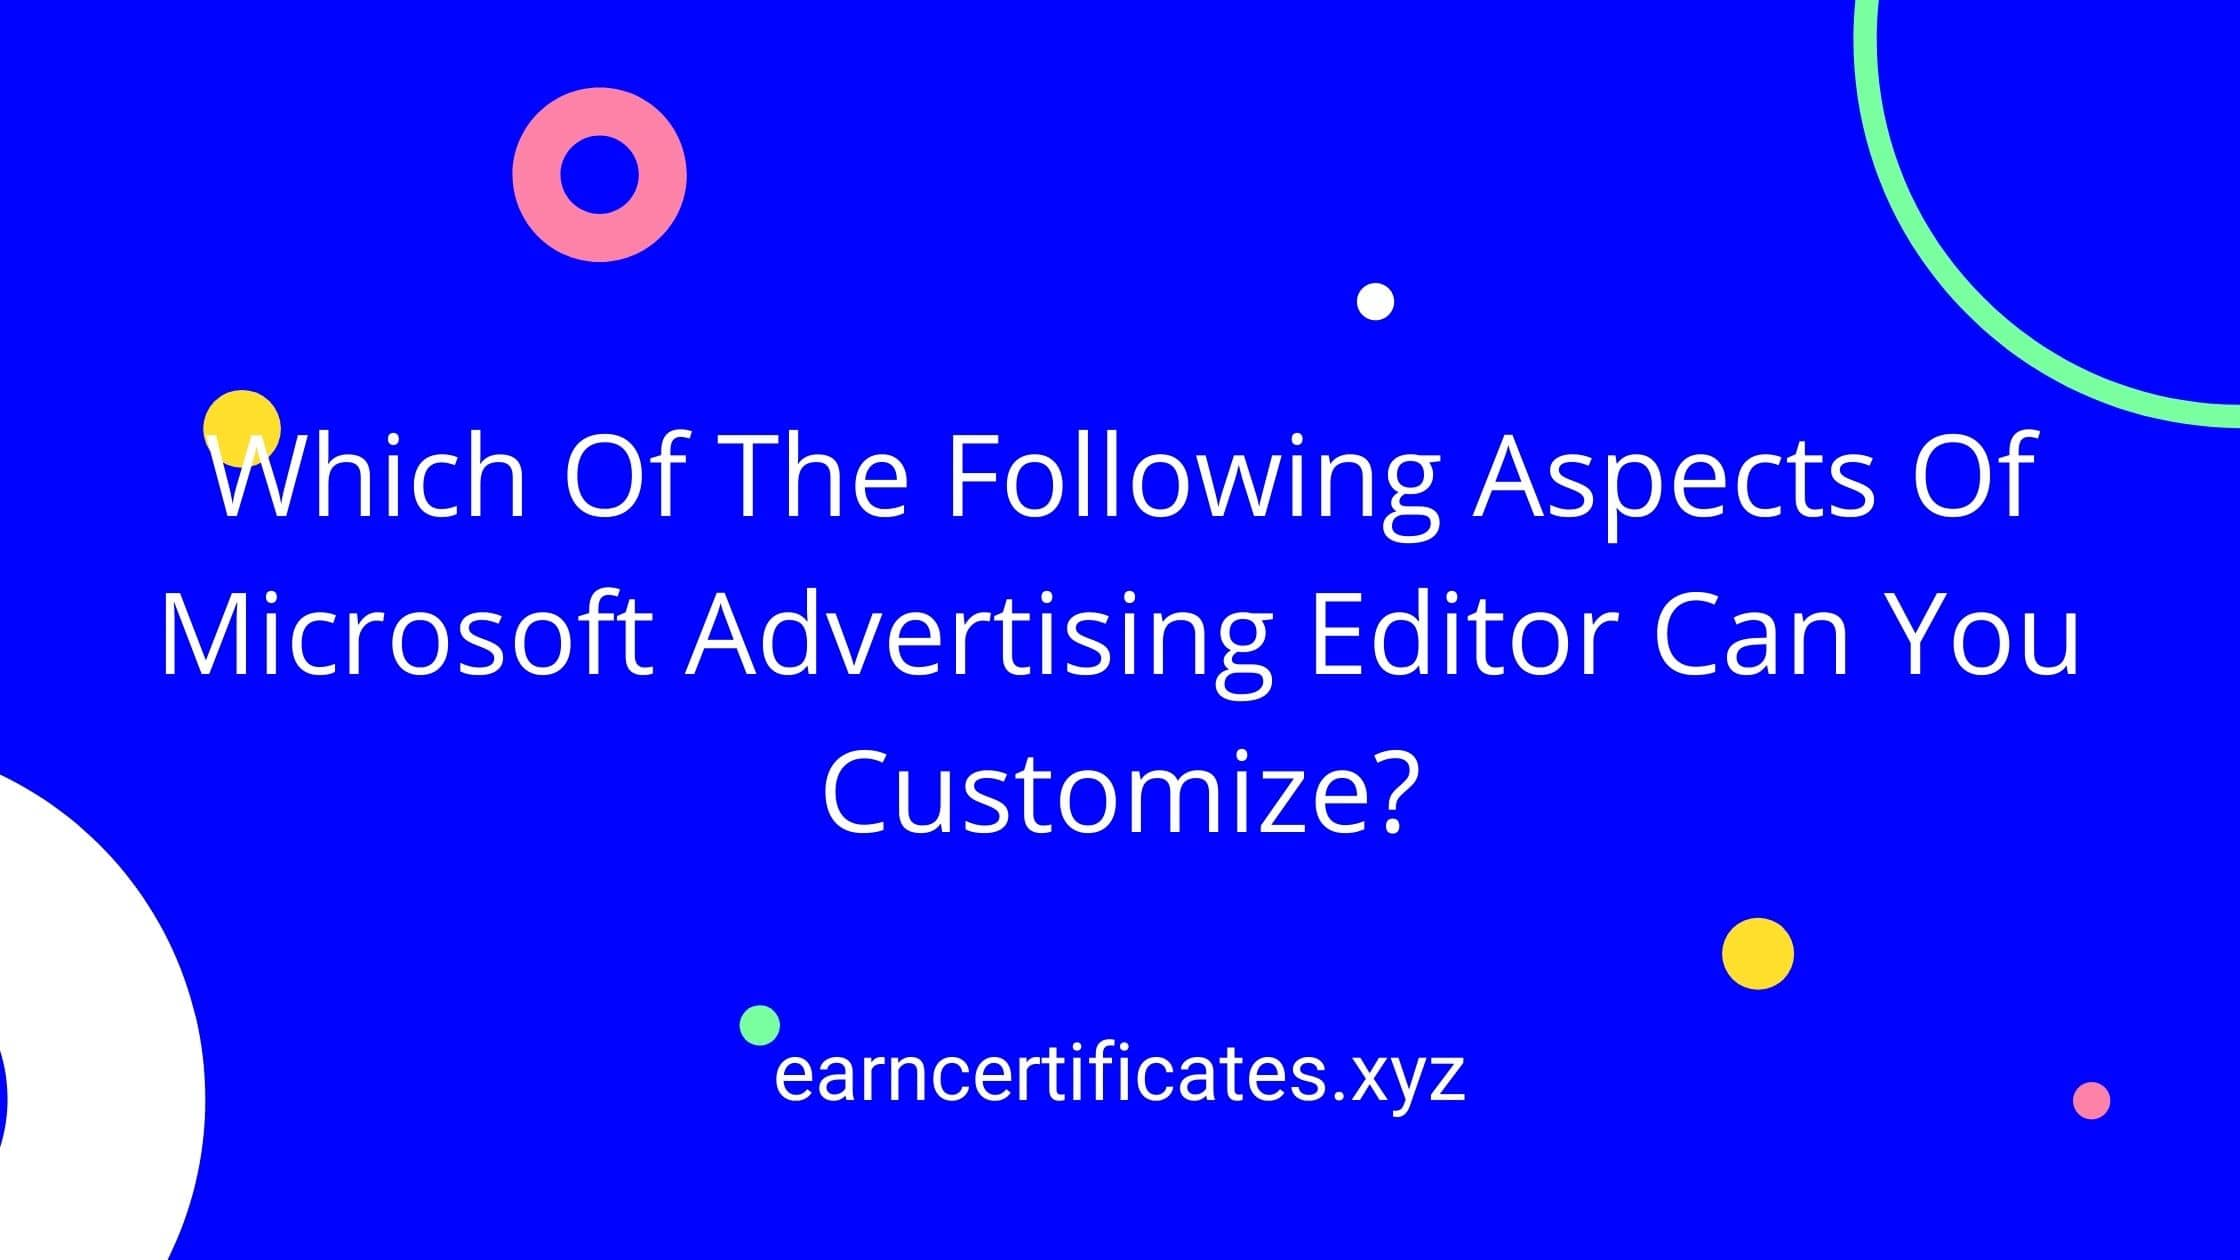 Which Of The Following Aspects Of Microsoft Advertising Editor Can You Customize?